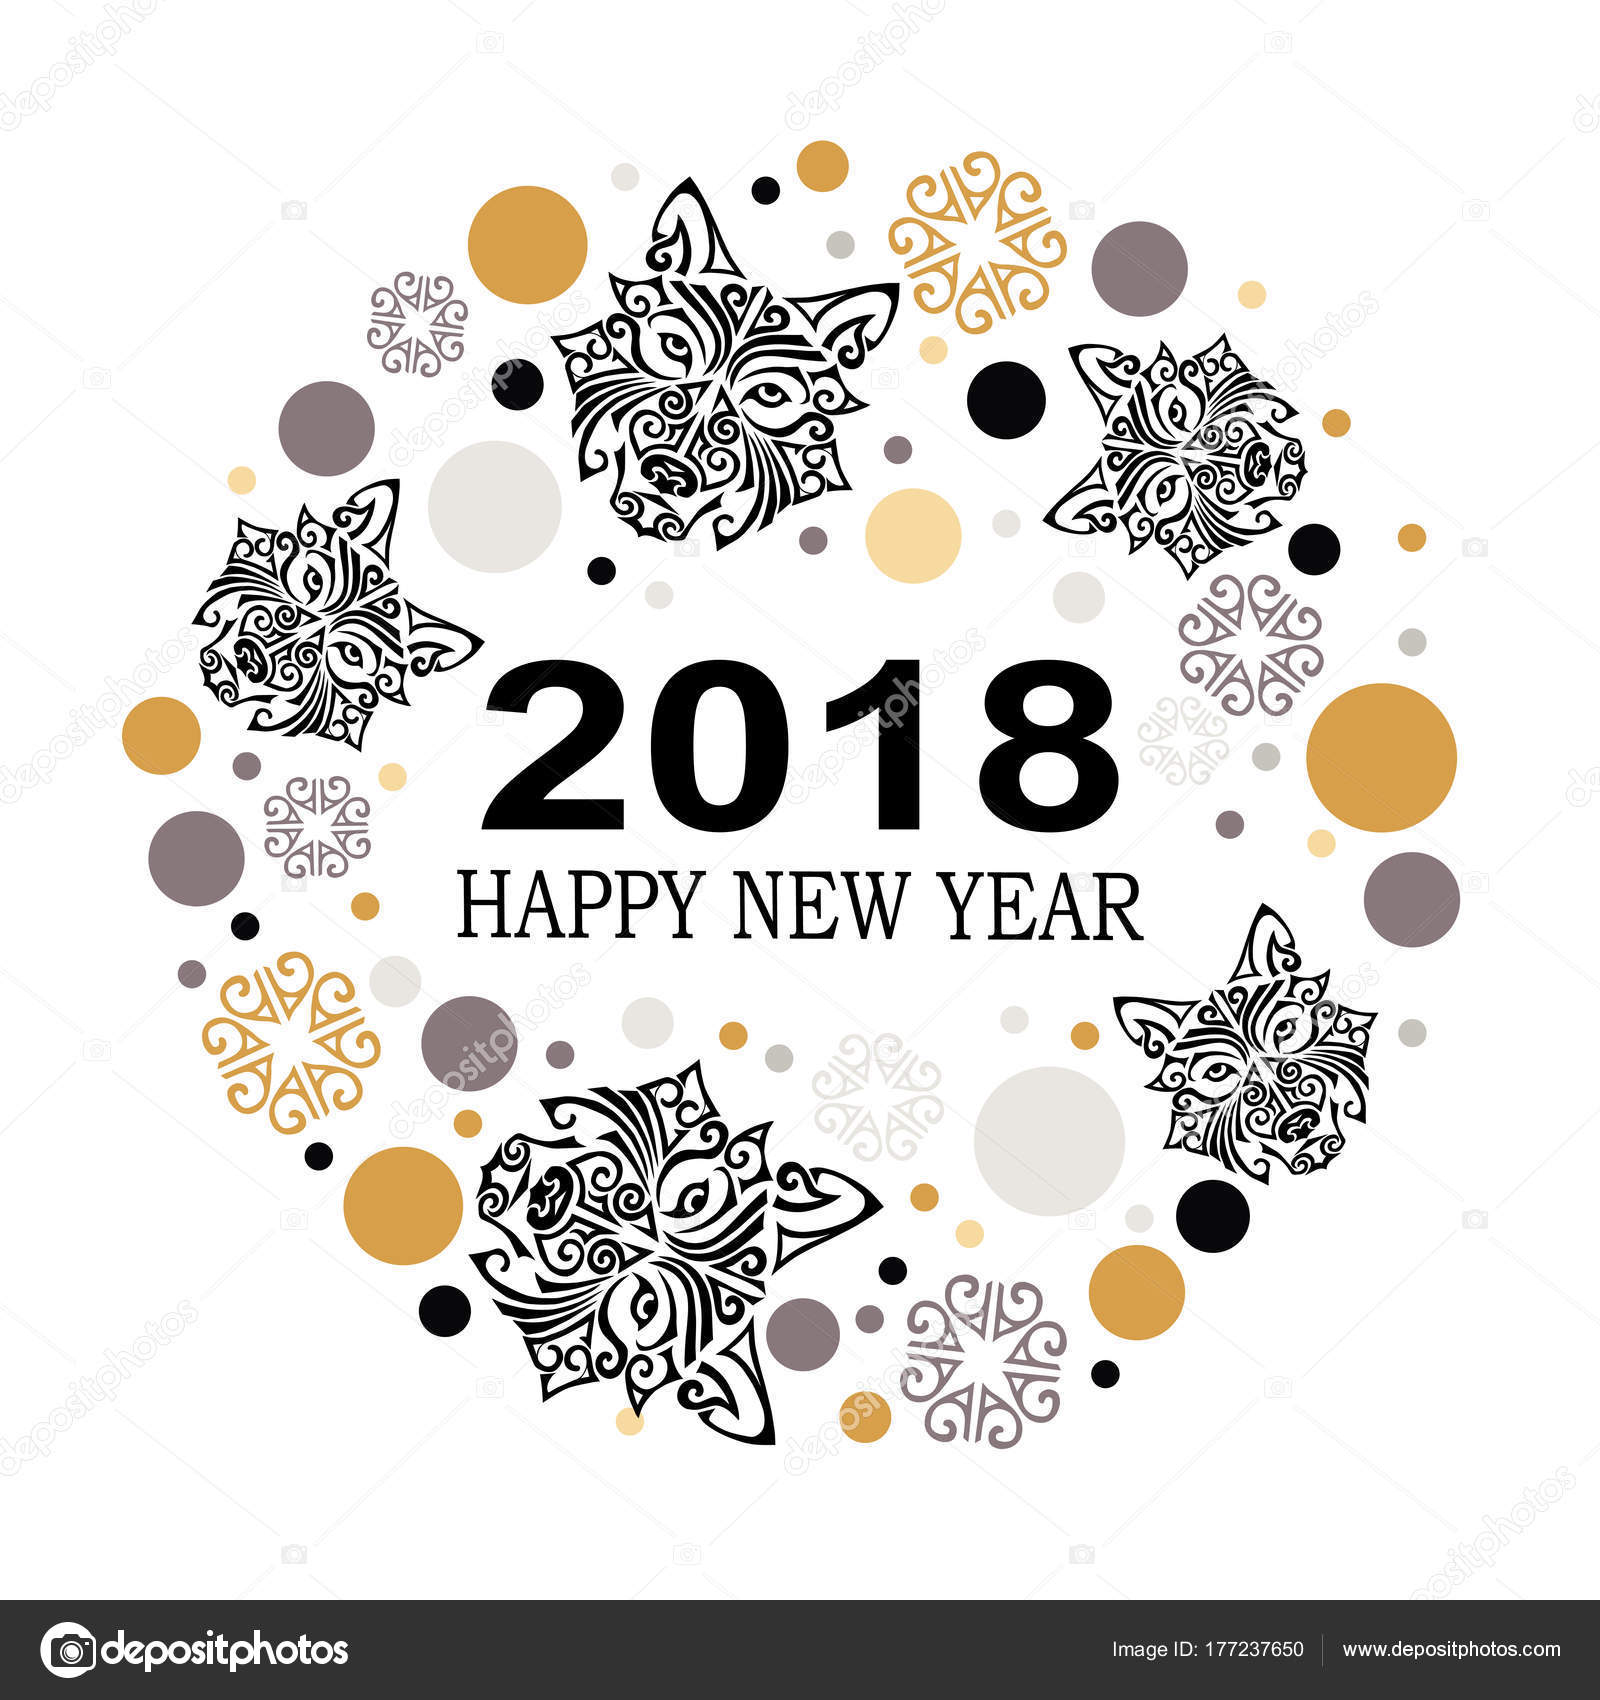 2018 new year card husky dog head template invitation fashion stock vector